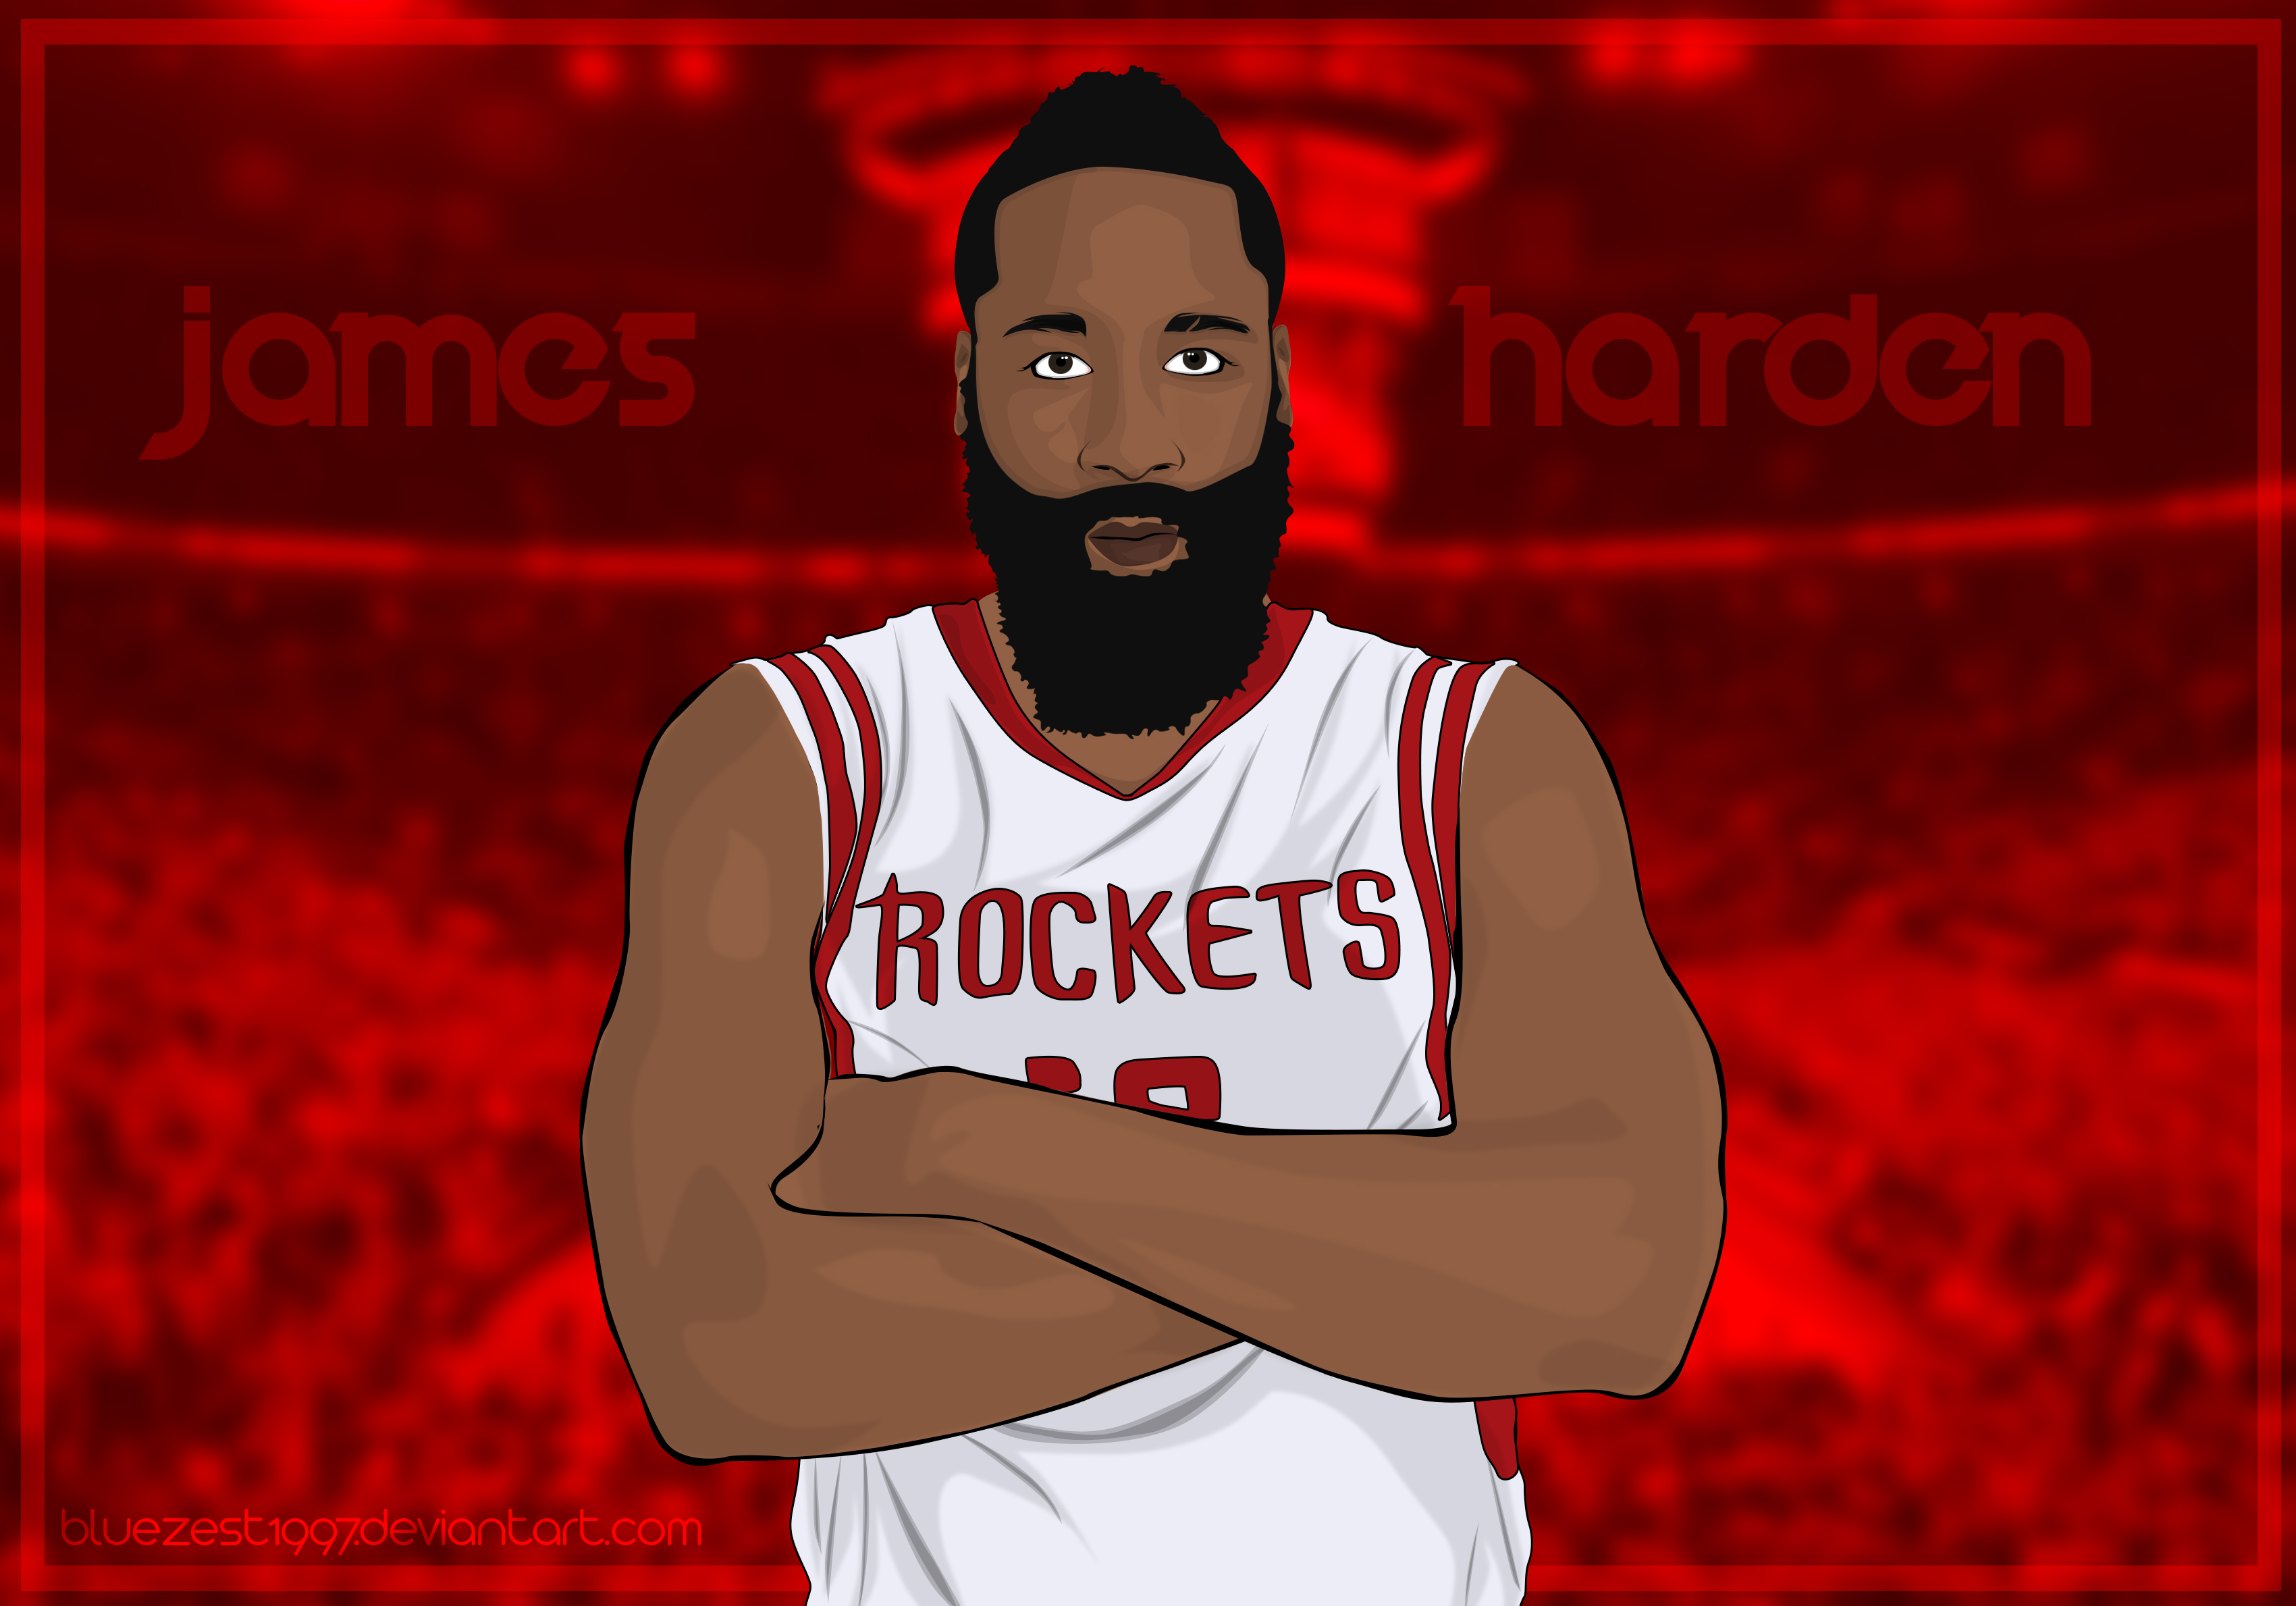 James Harden Vector By Bluezest1997 On DeviantArt